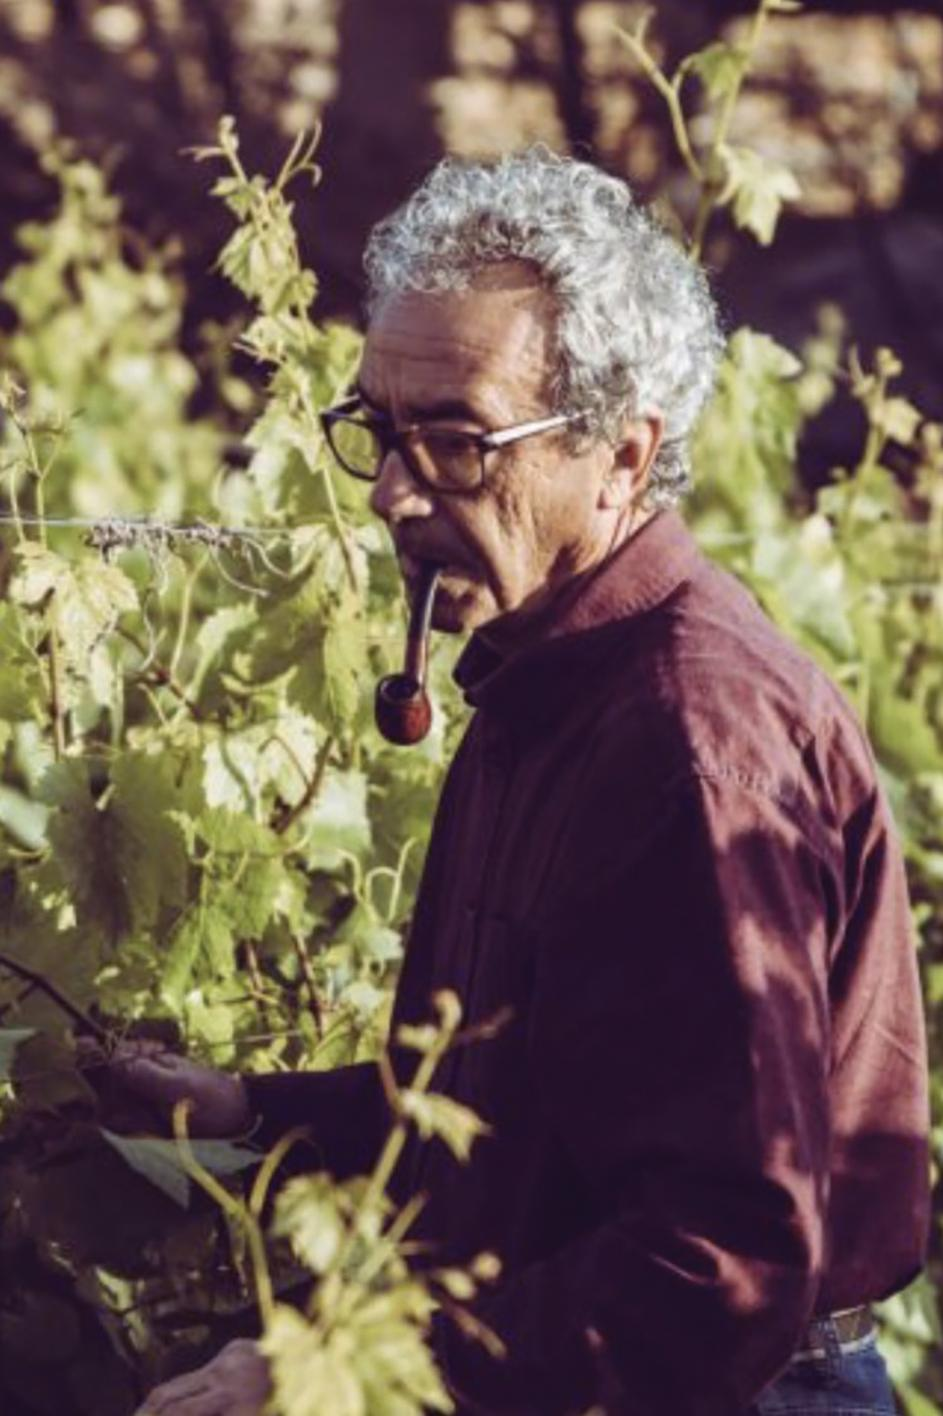 Winemaker Mark Cassar among vines at his estate in Siġġiewi. Photo: Luca Farinotti